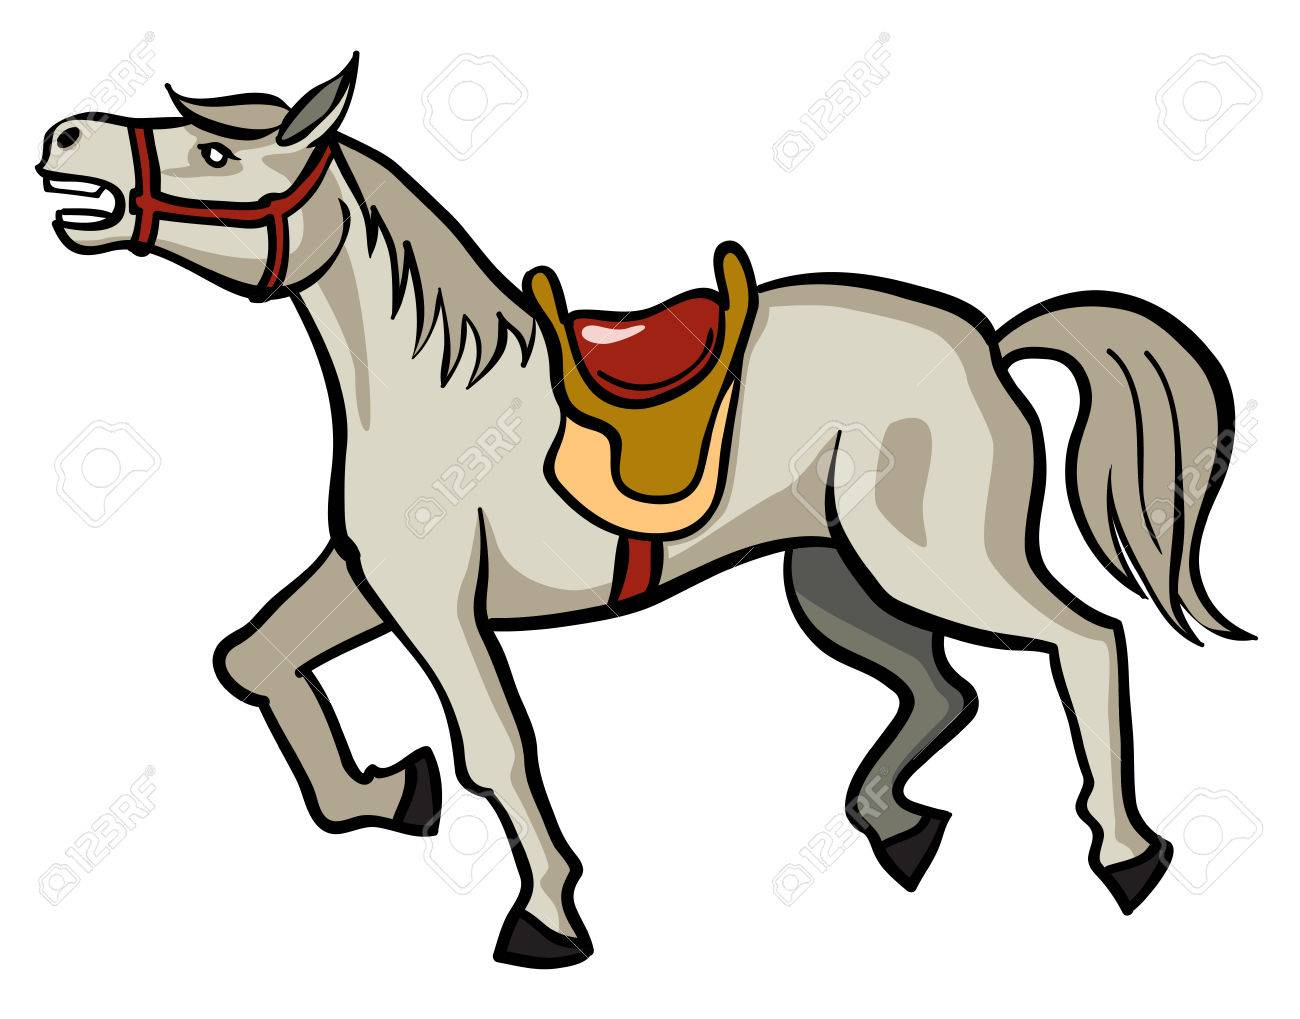 gray horse with saddle vector image royalty free cliparts vectors rh 123rf com Horse Shoe Clip Art Horse Shoe Clip Art